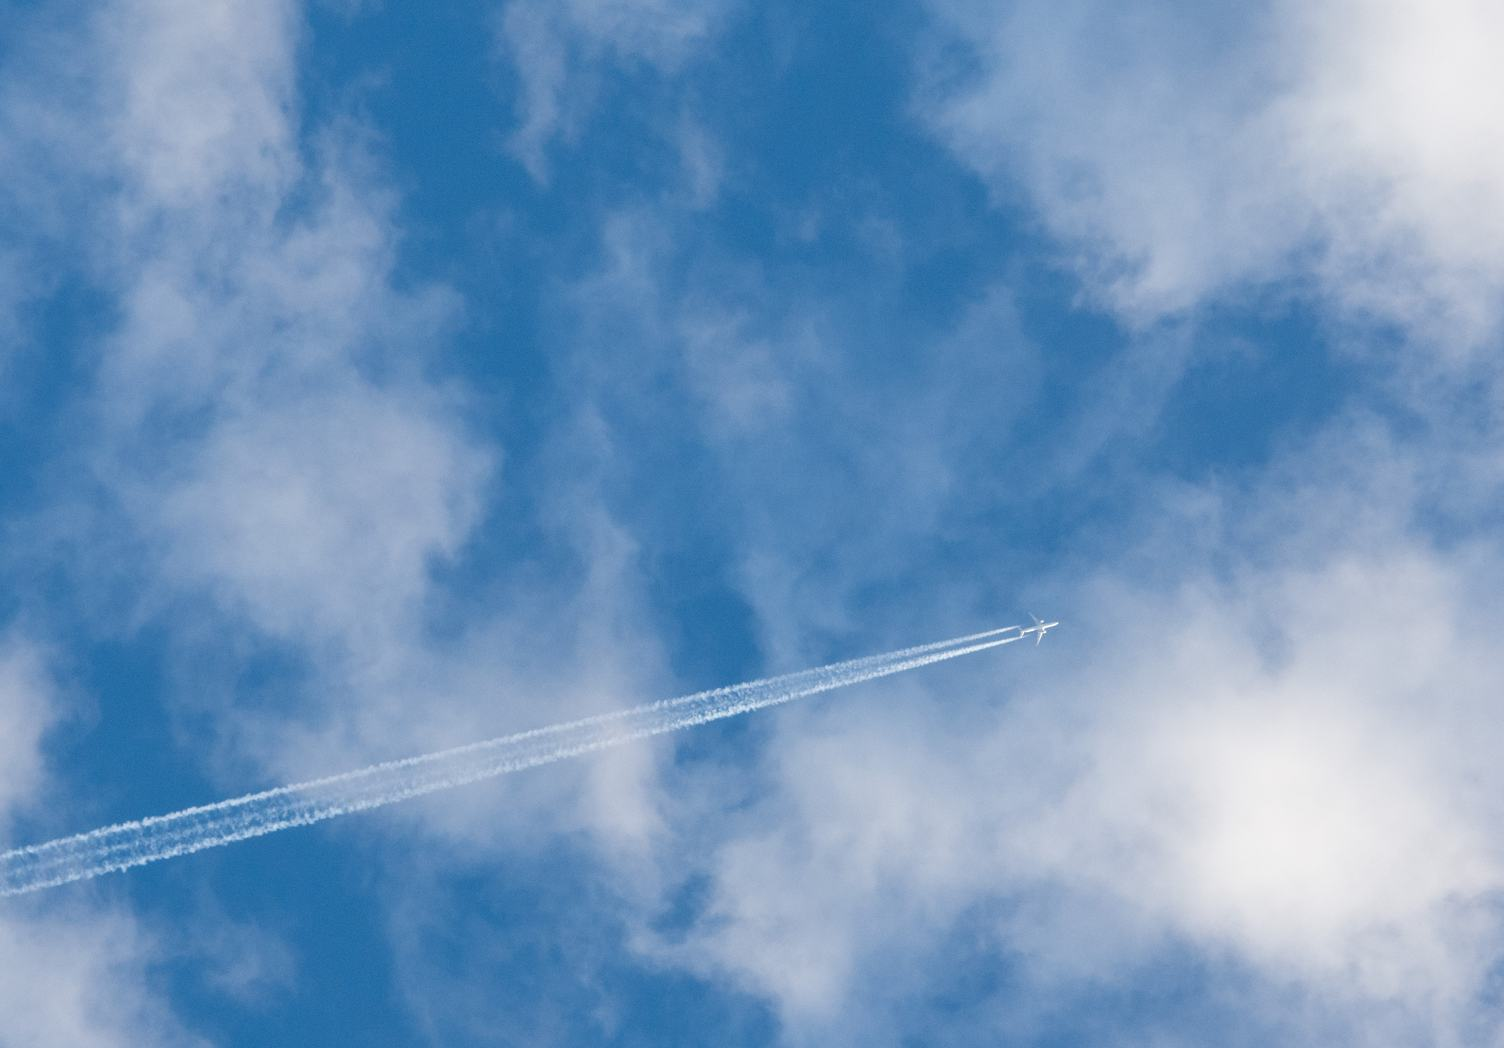 Plane Flying against Cloudy Sky